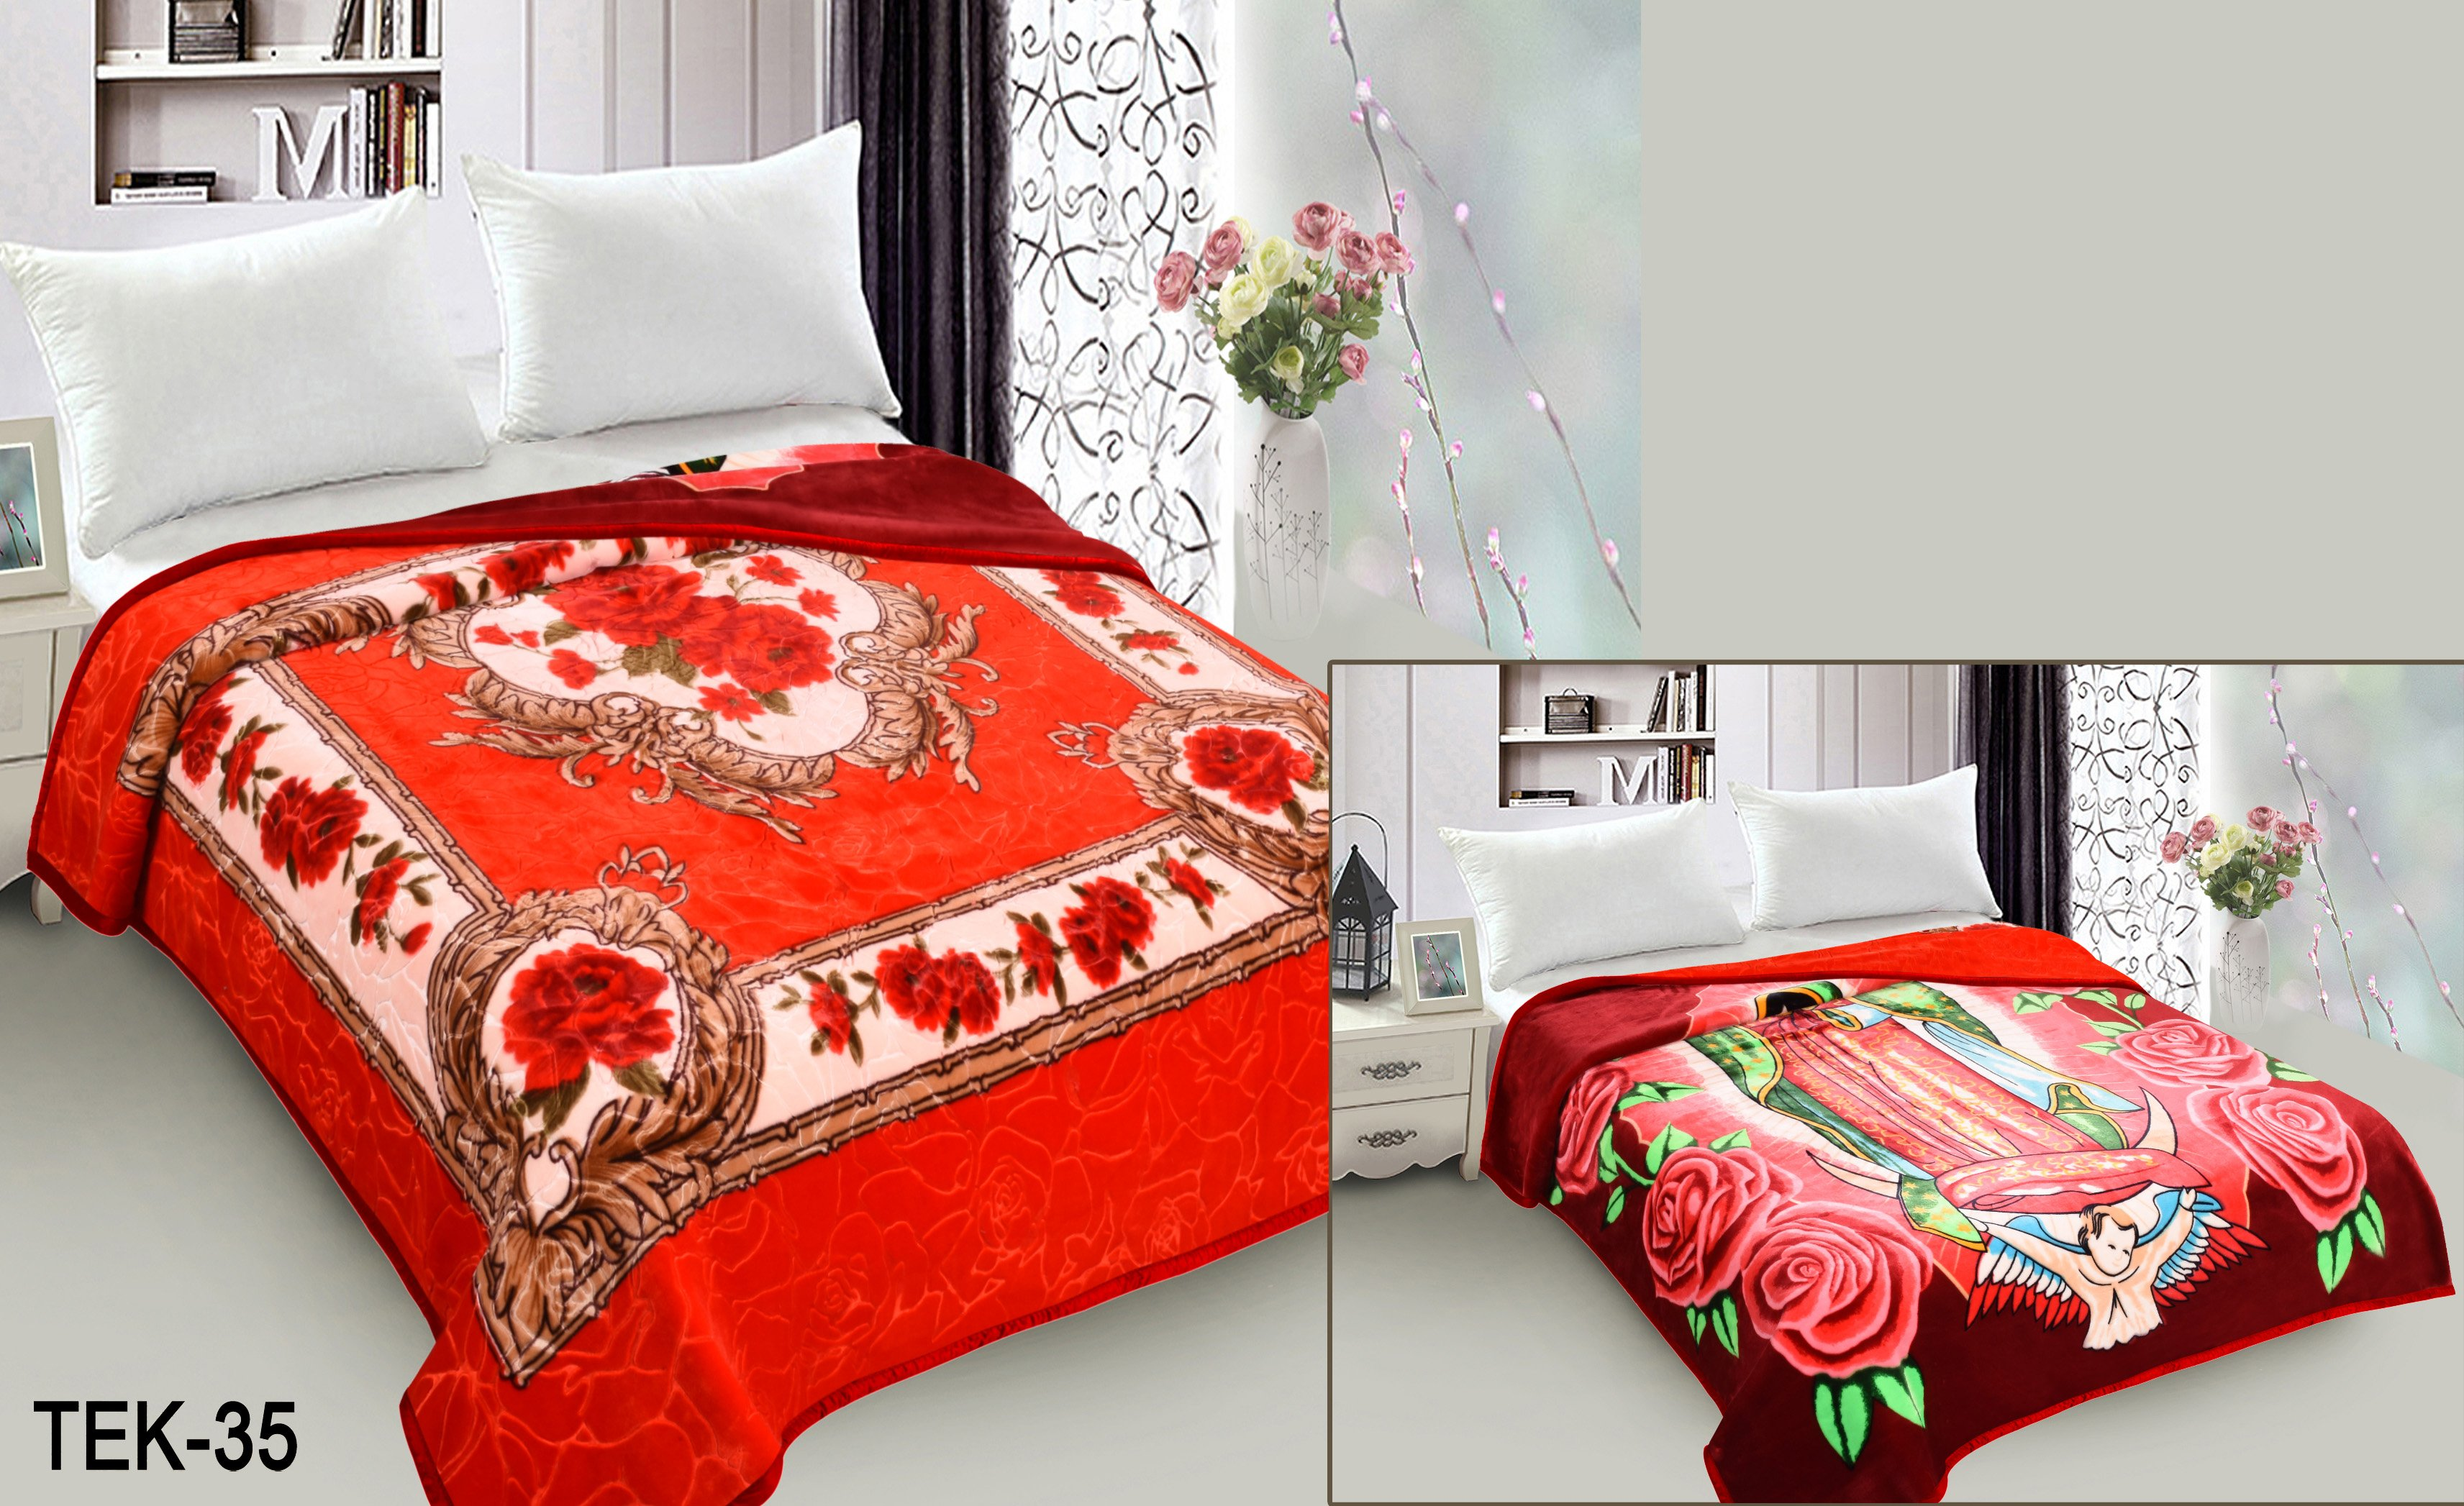 textile king clearance super soft luxury blanket